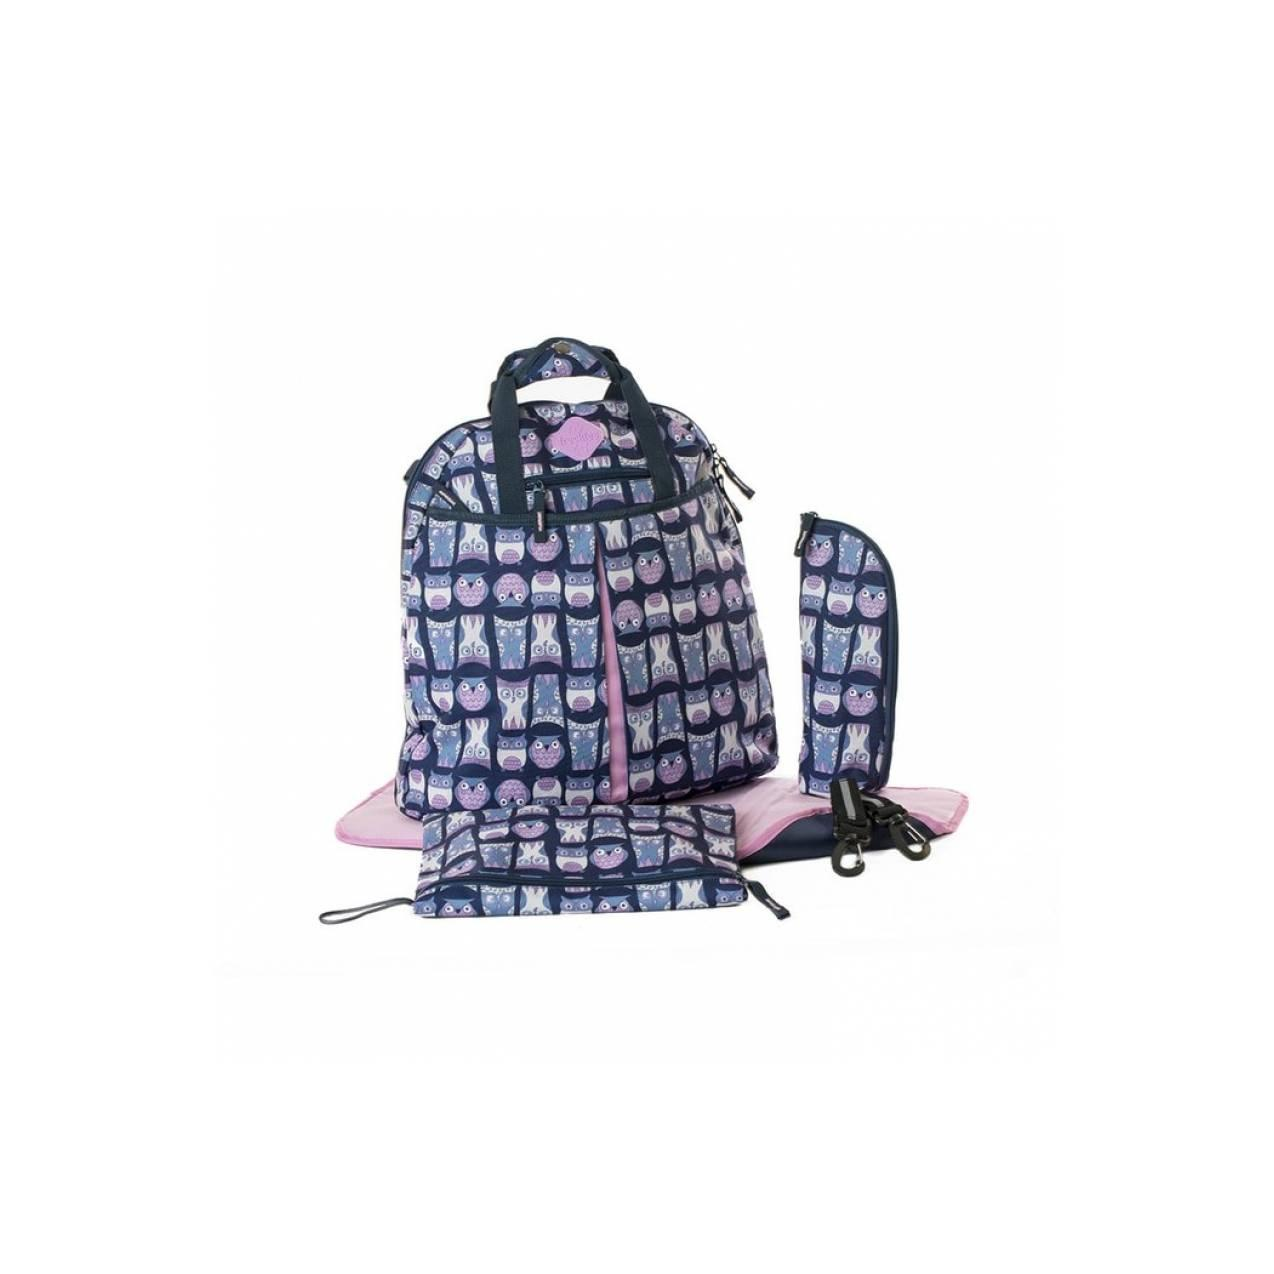 Buy Sell Cheapest Tas Okiedog Yukon Best Quality Product Deals Mondo Tweet Beige Taupe Bayi Freckles Backpack Owl Blue Pink